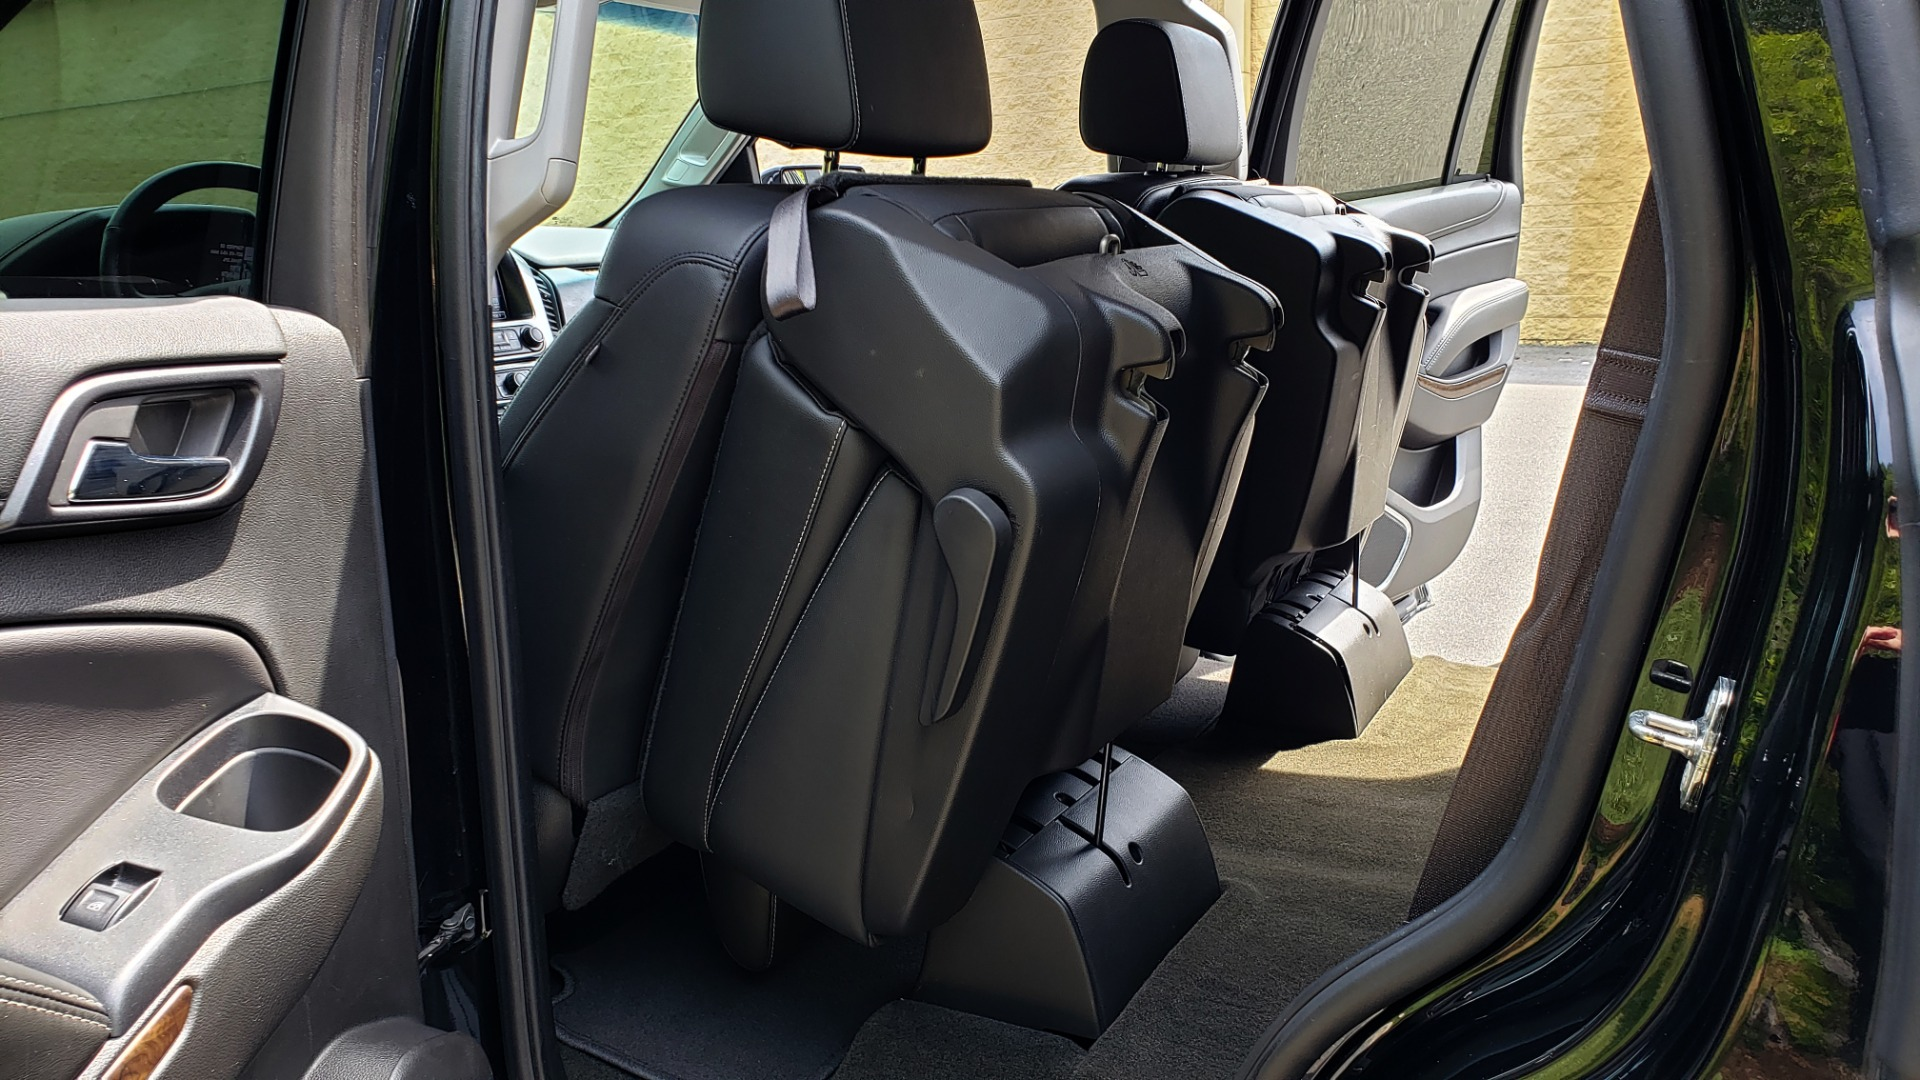 Used 2017 Chevrolet TAHOE LT 2WD / NAV / BOSE / HEATED SEATS / 3-ROW / REARVIEW for sale Sold at Formula Imports in Charlotte NC 28227 23